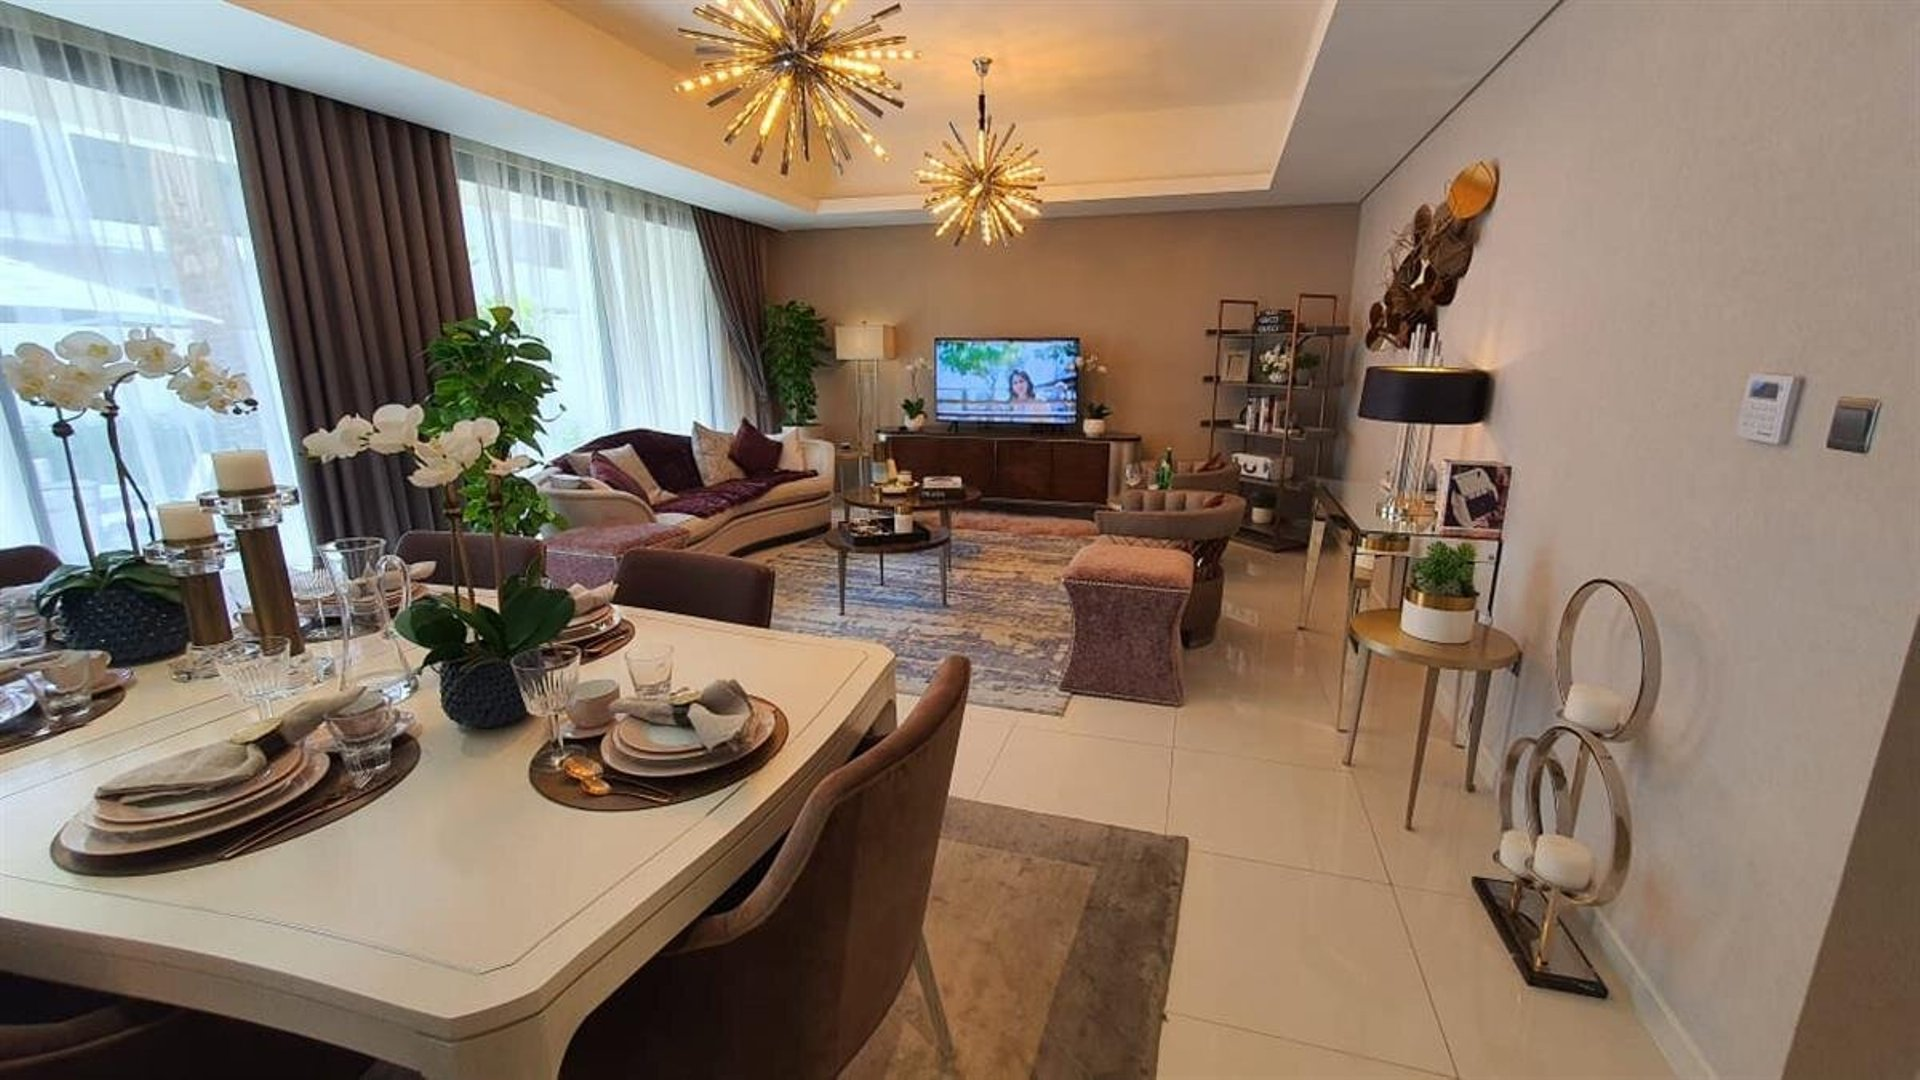 Townhouse for sale in Dubai, UAE, 3 bedrooms, 309 m2, No. 24287 – photo 3